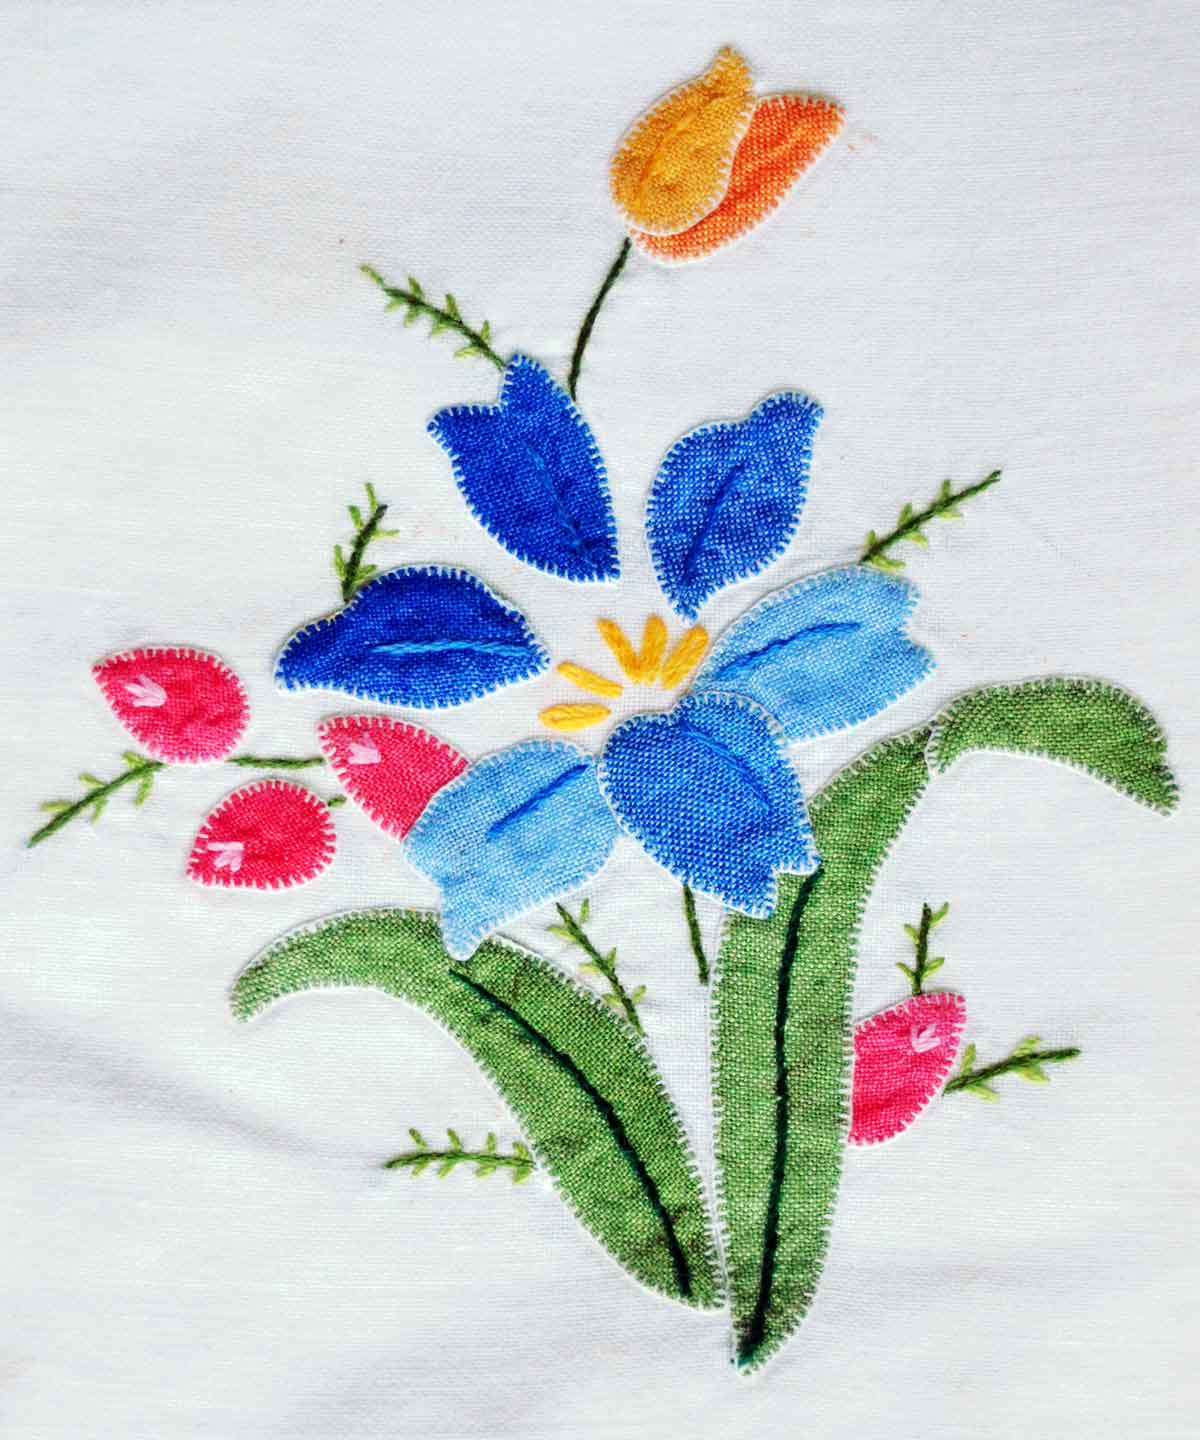 blanket stitch applique needlework flowers vintage